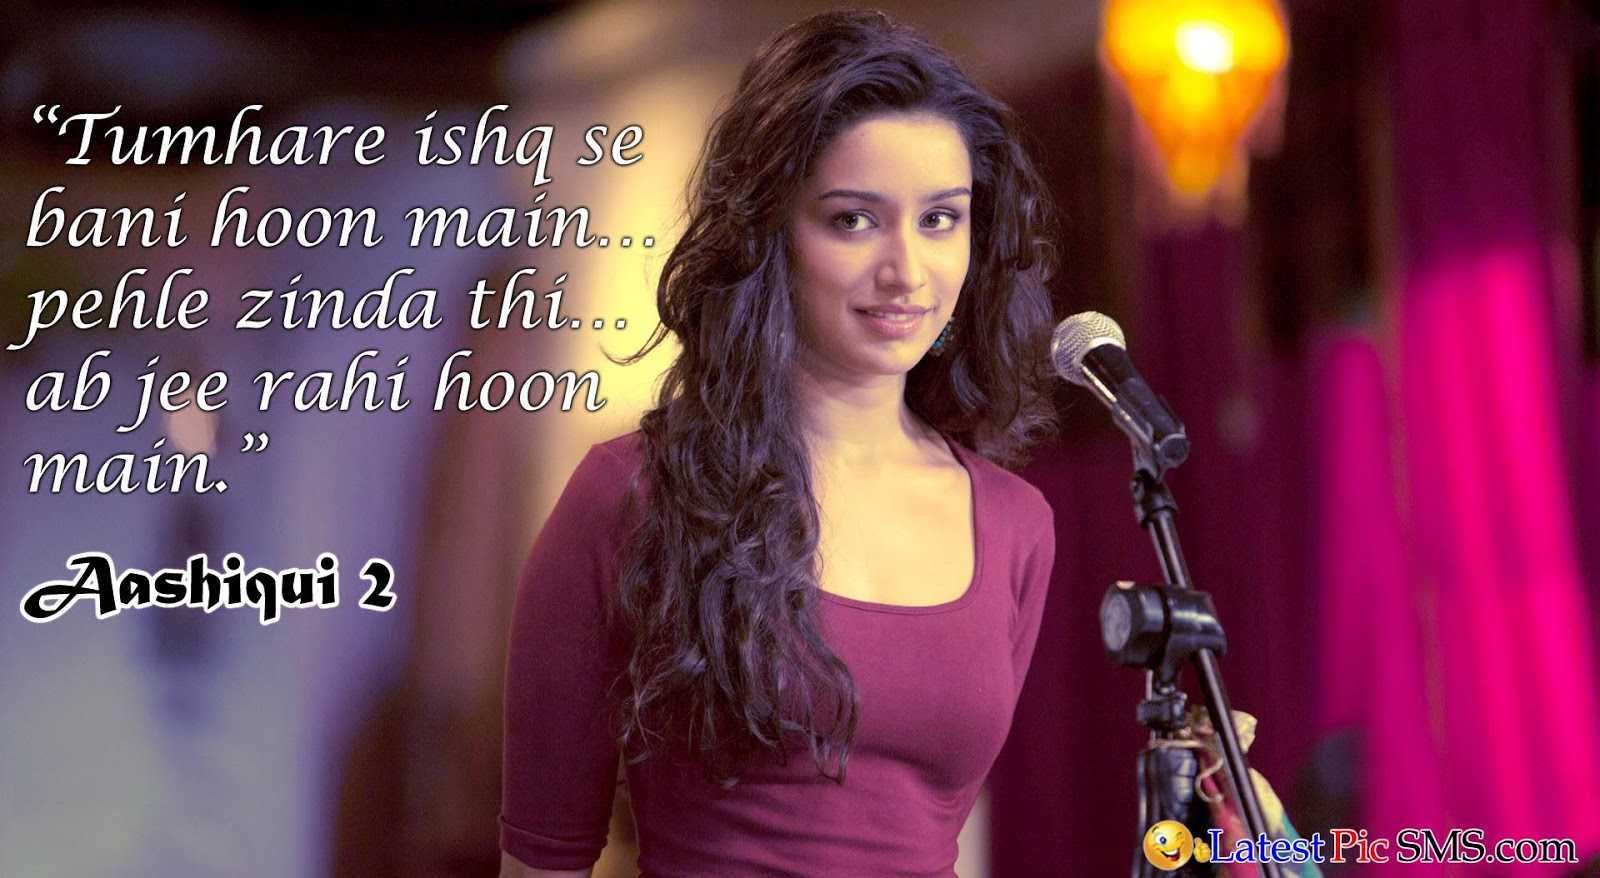 aashiqui 2 ishq love Bollywood Dialogues